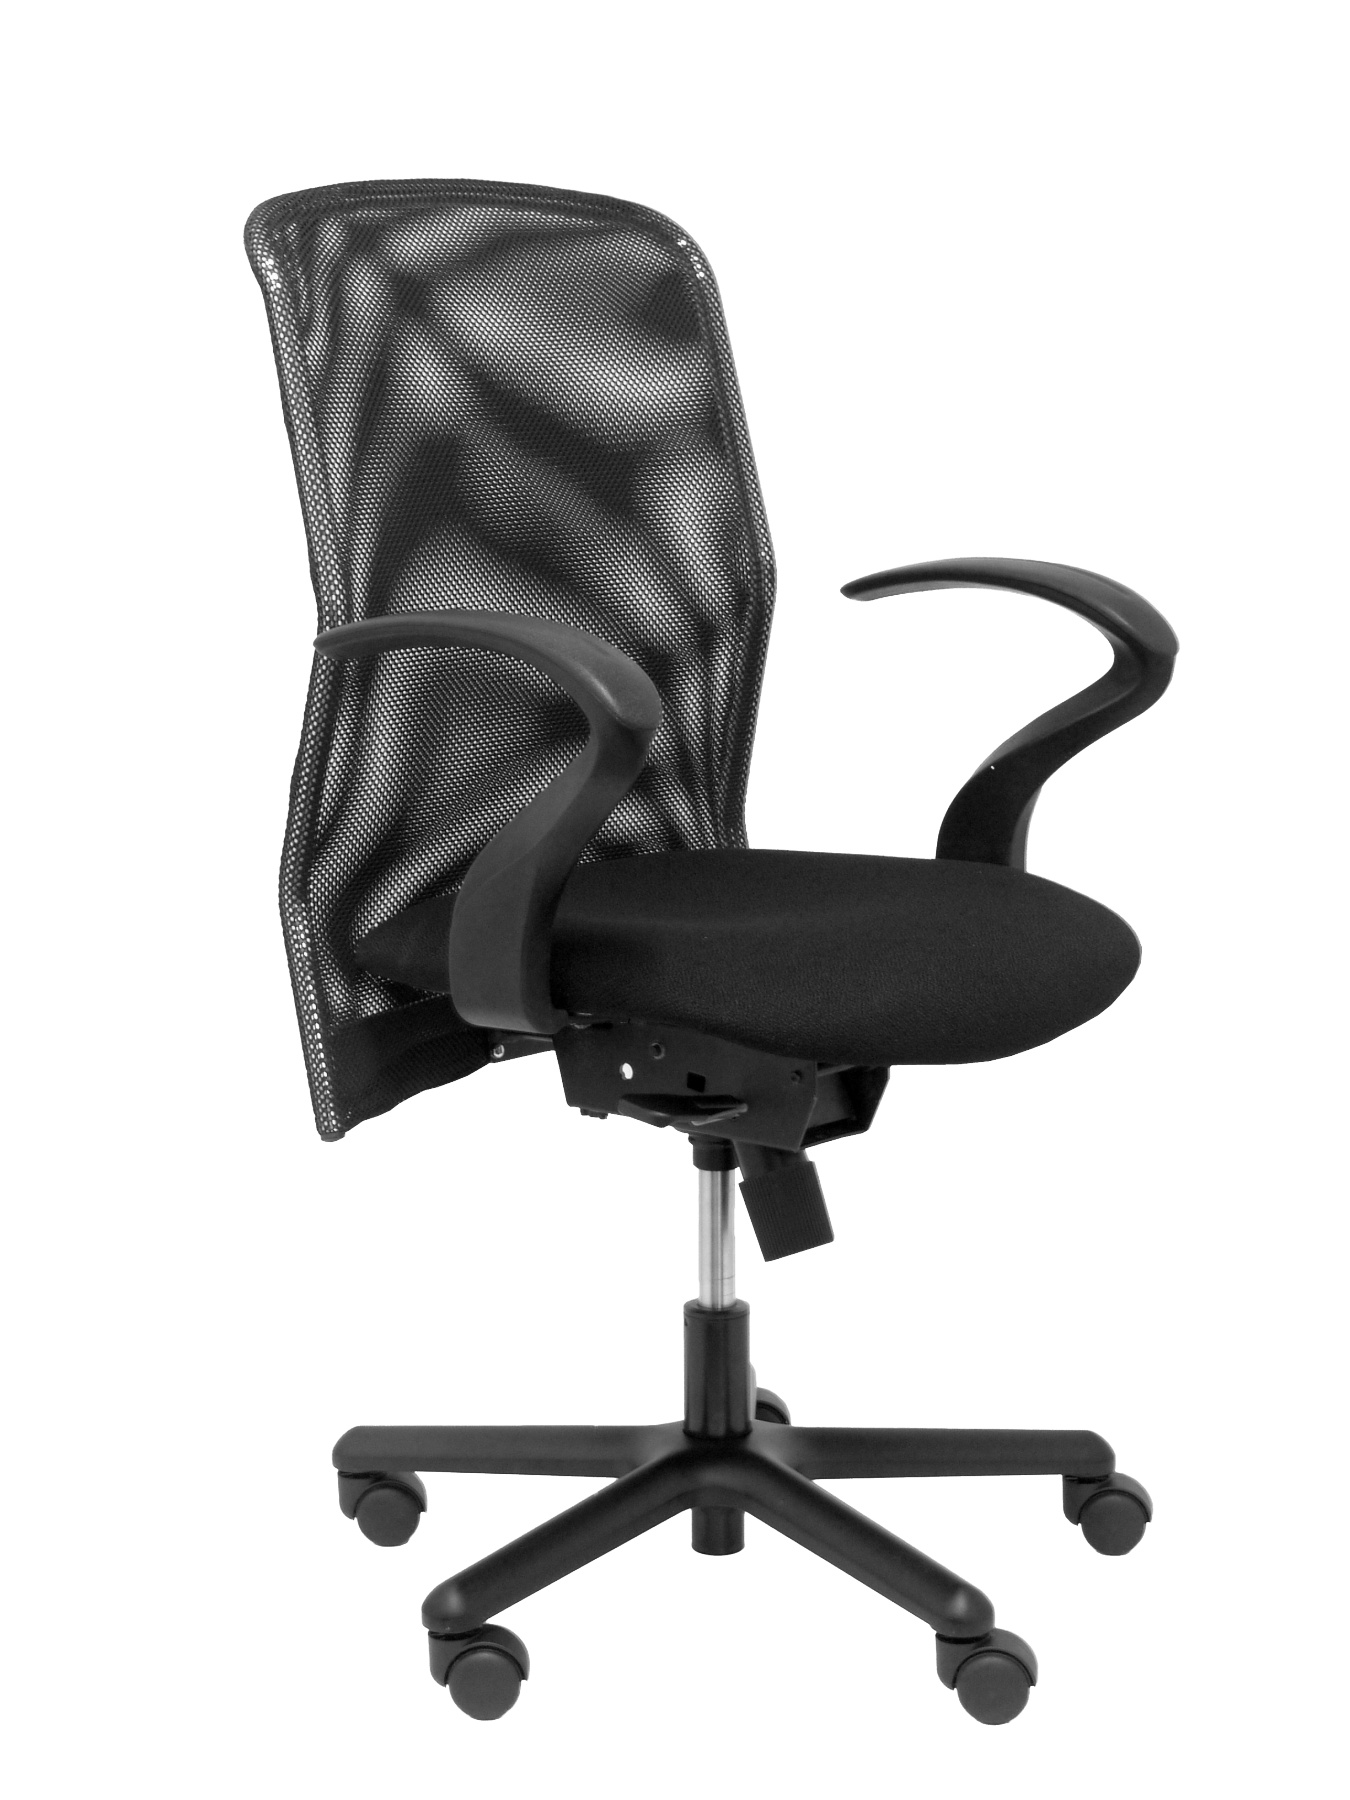 Ergonomic Office Chair With Mechanism Synchro, Fixed Arms And Adjustable In Height-breathable Mesh Backrest